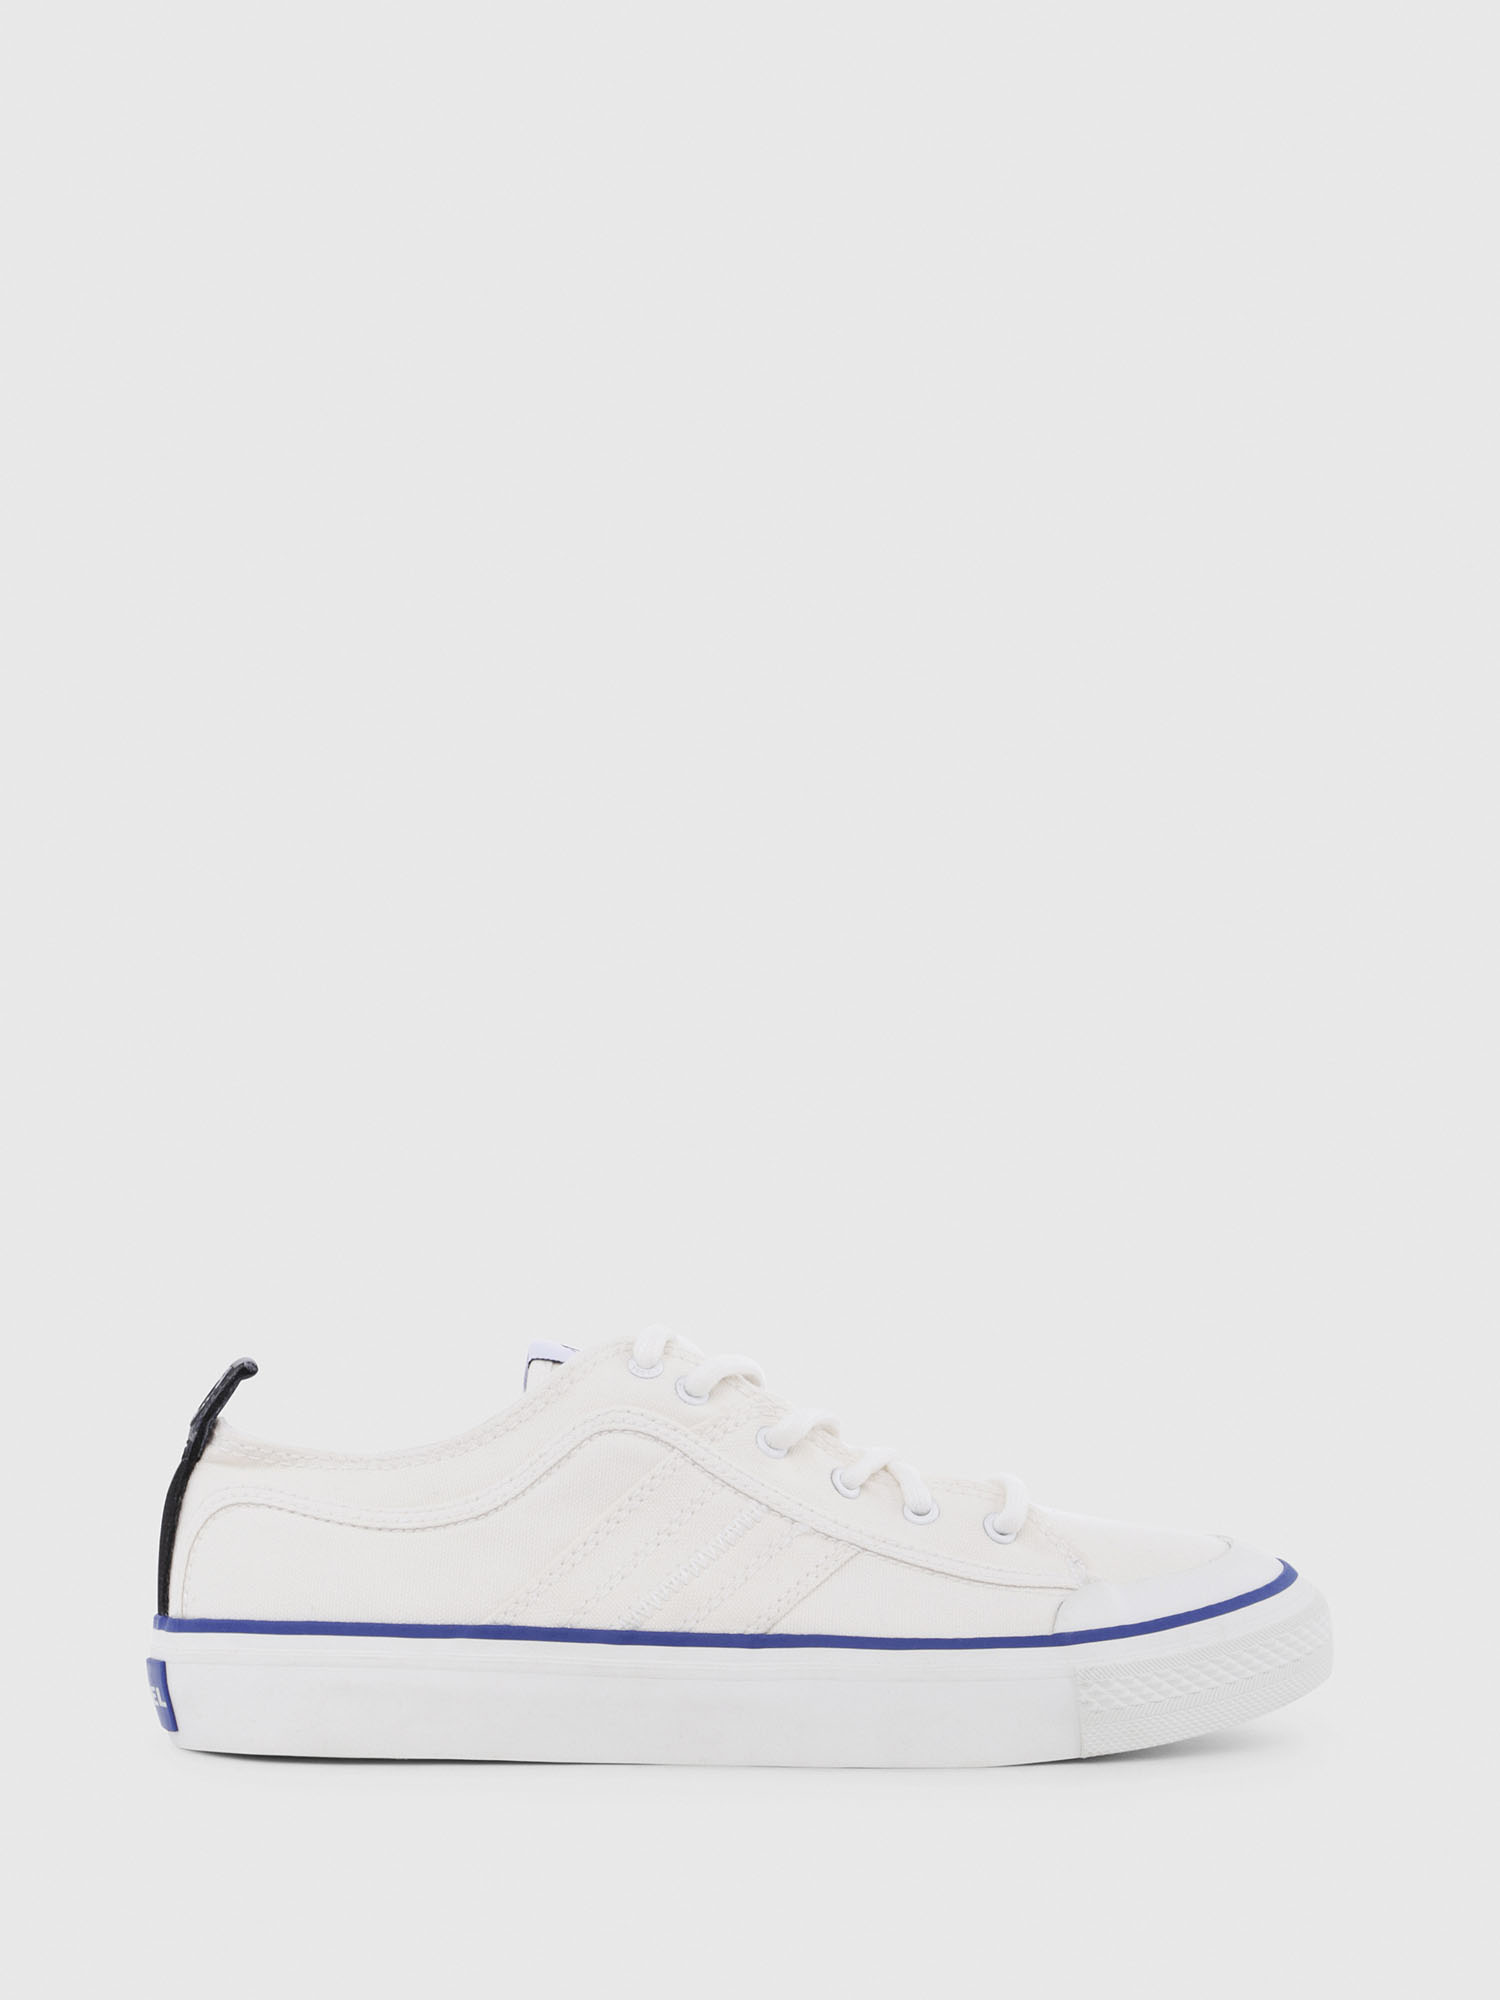 Diesel - S-ASTICO LC LOGO,  - Sneakers - Image 1